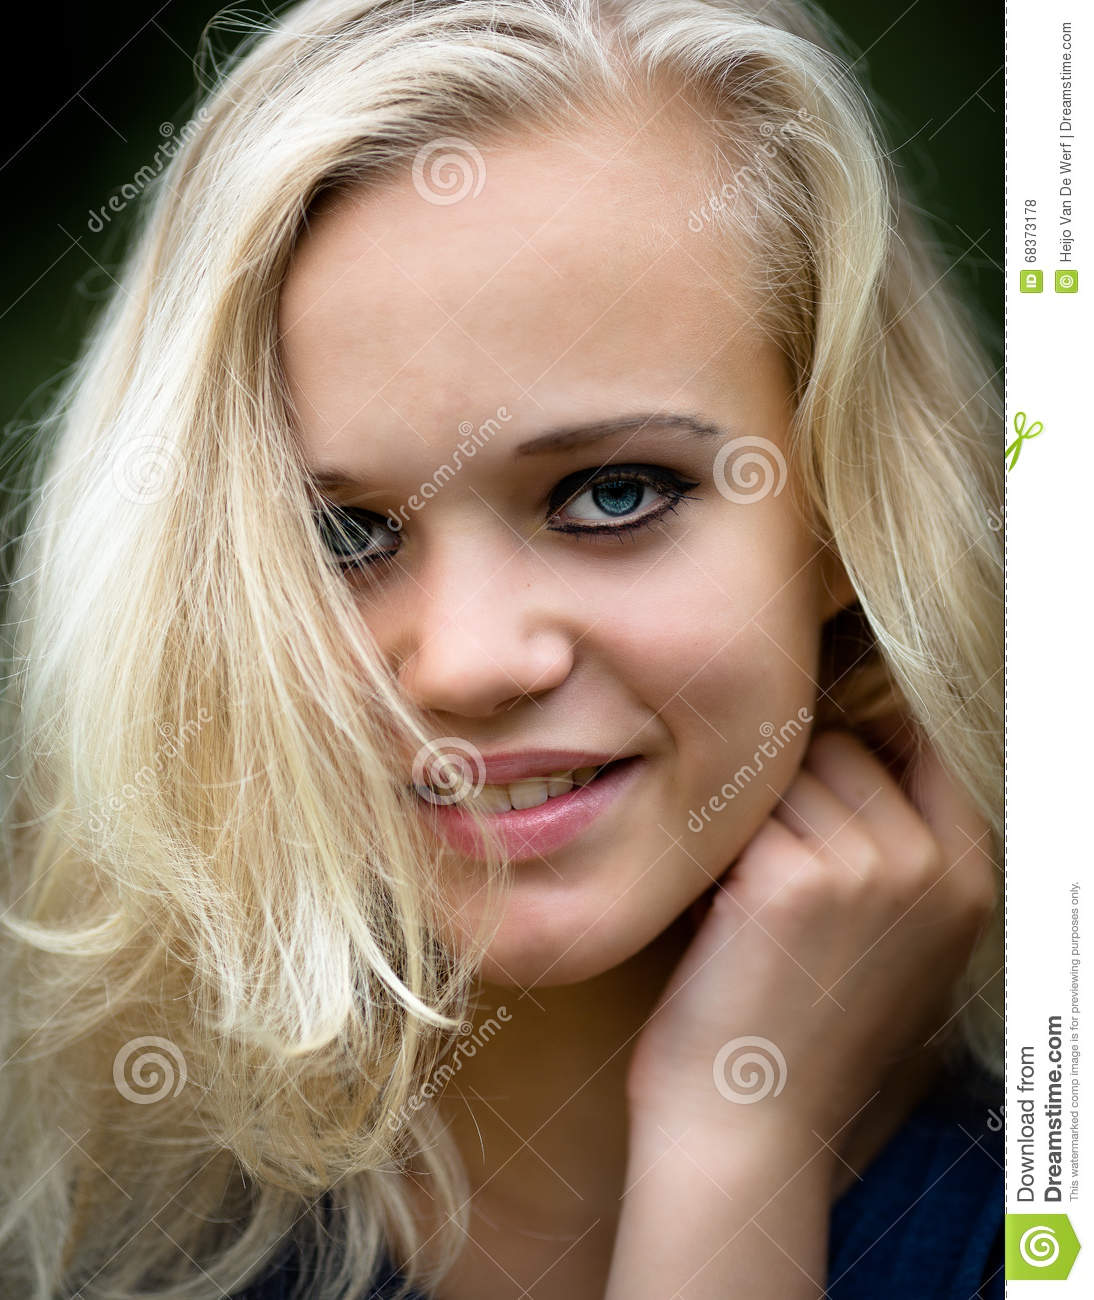 Beautiful Young Blond Teenage Girl Wearing Make Up